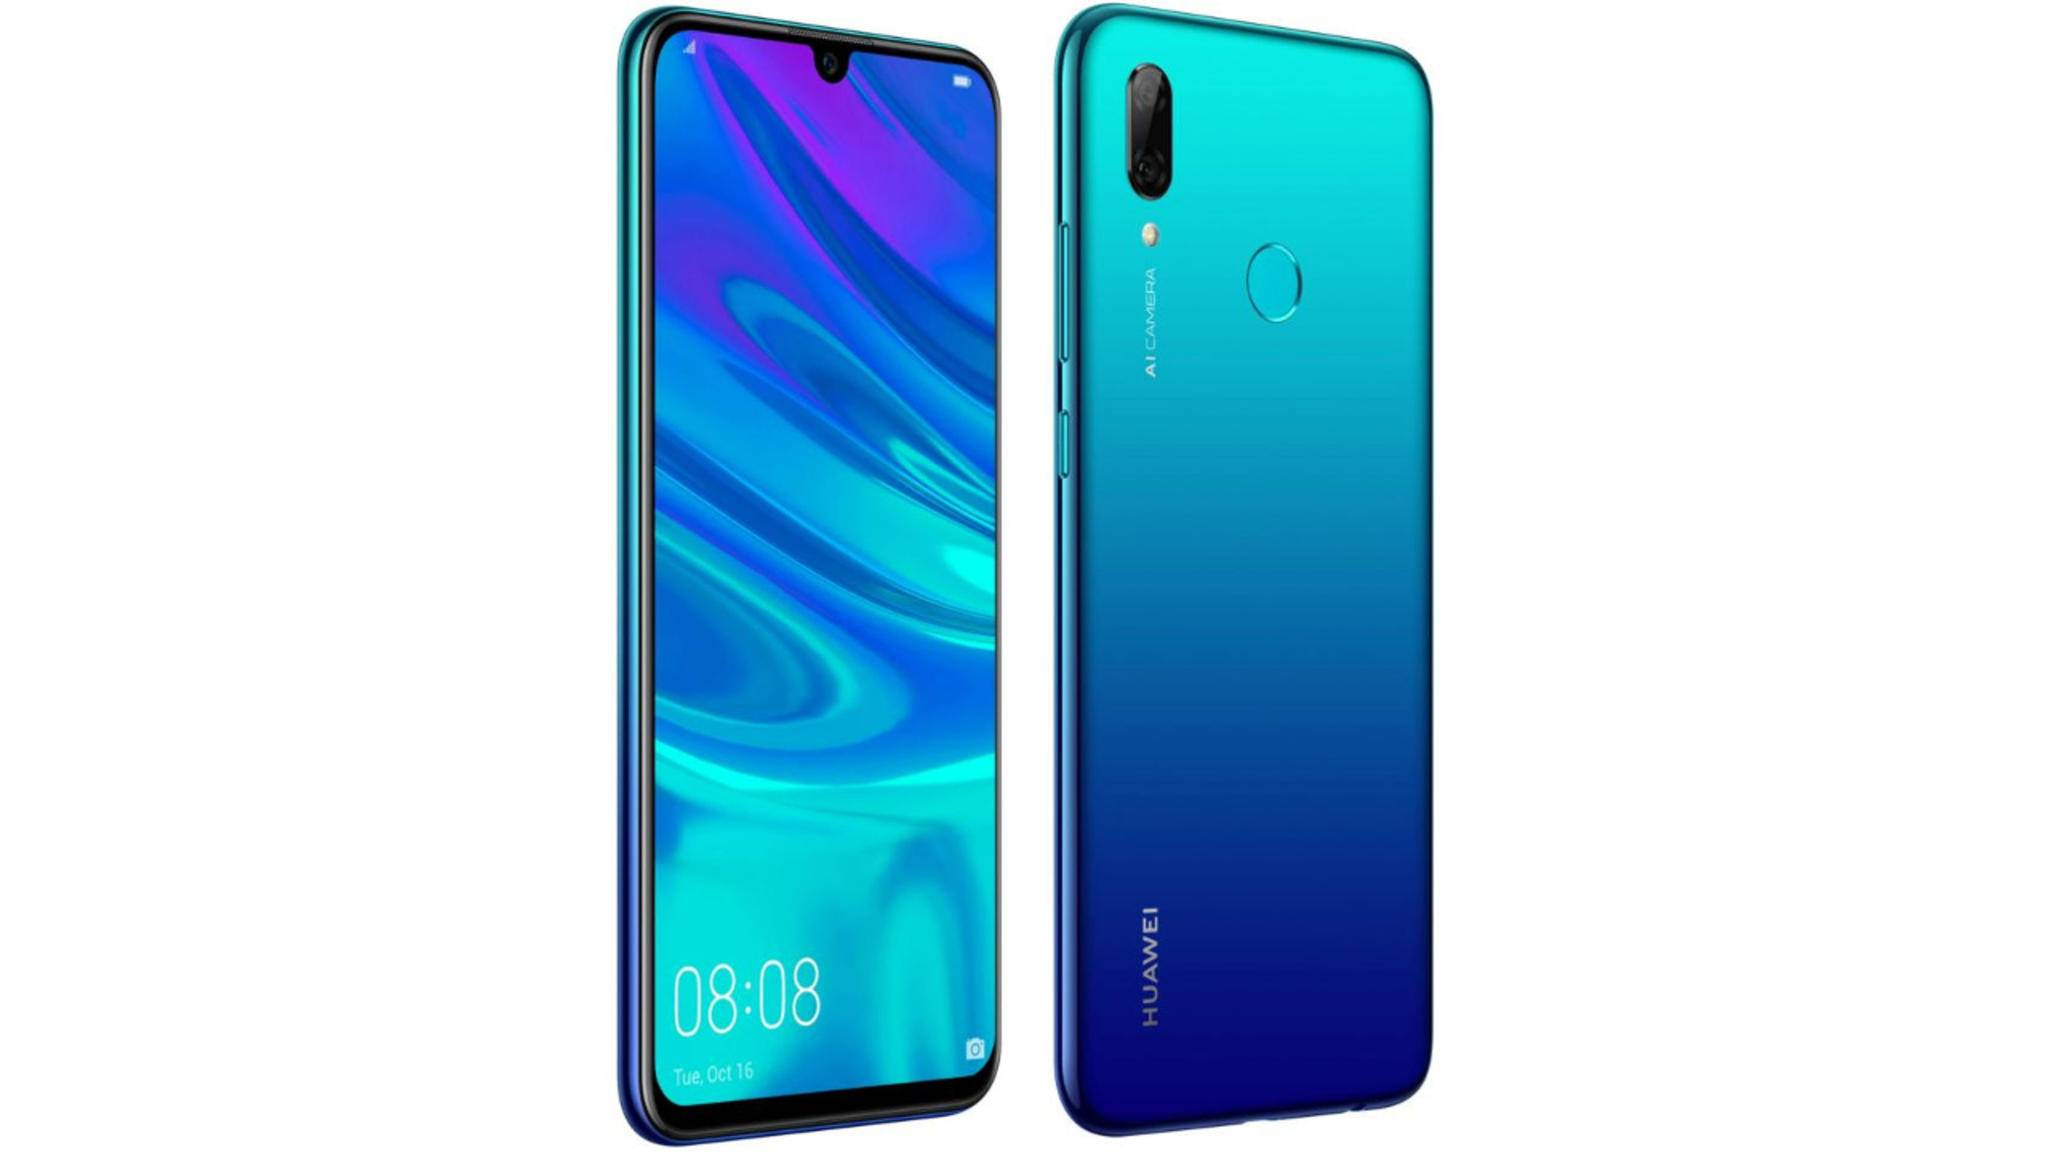 Das Huawei P Smart (2019) in Aurora Blau.